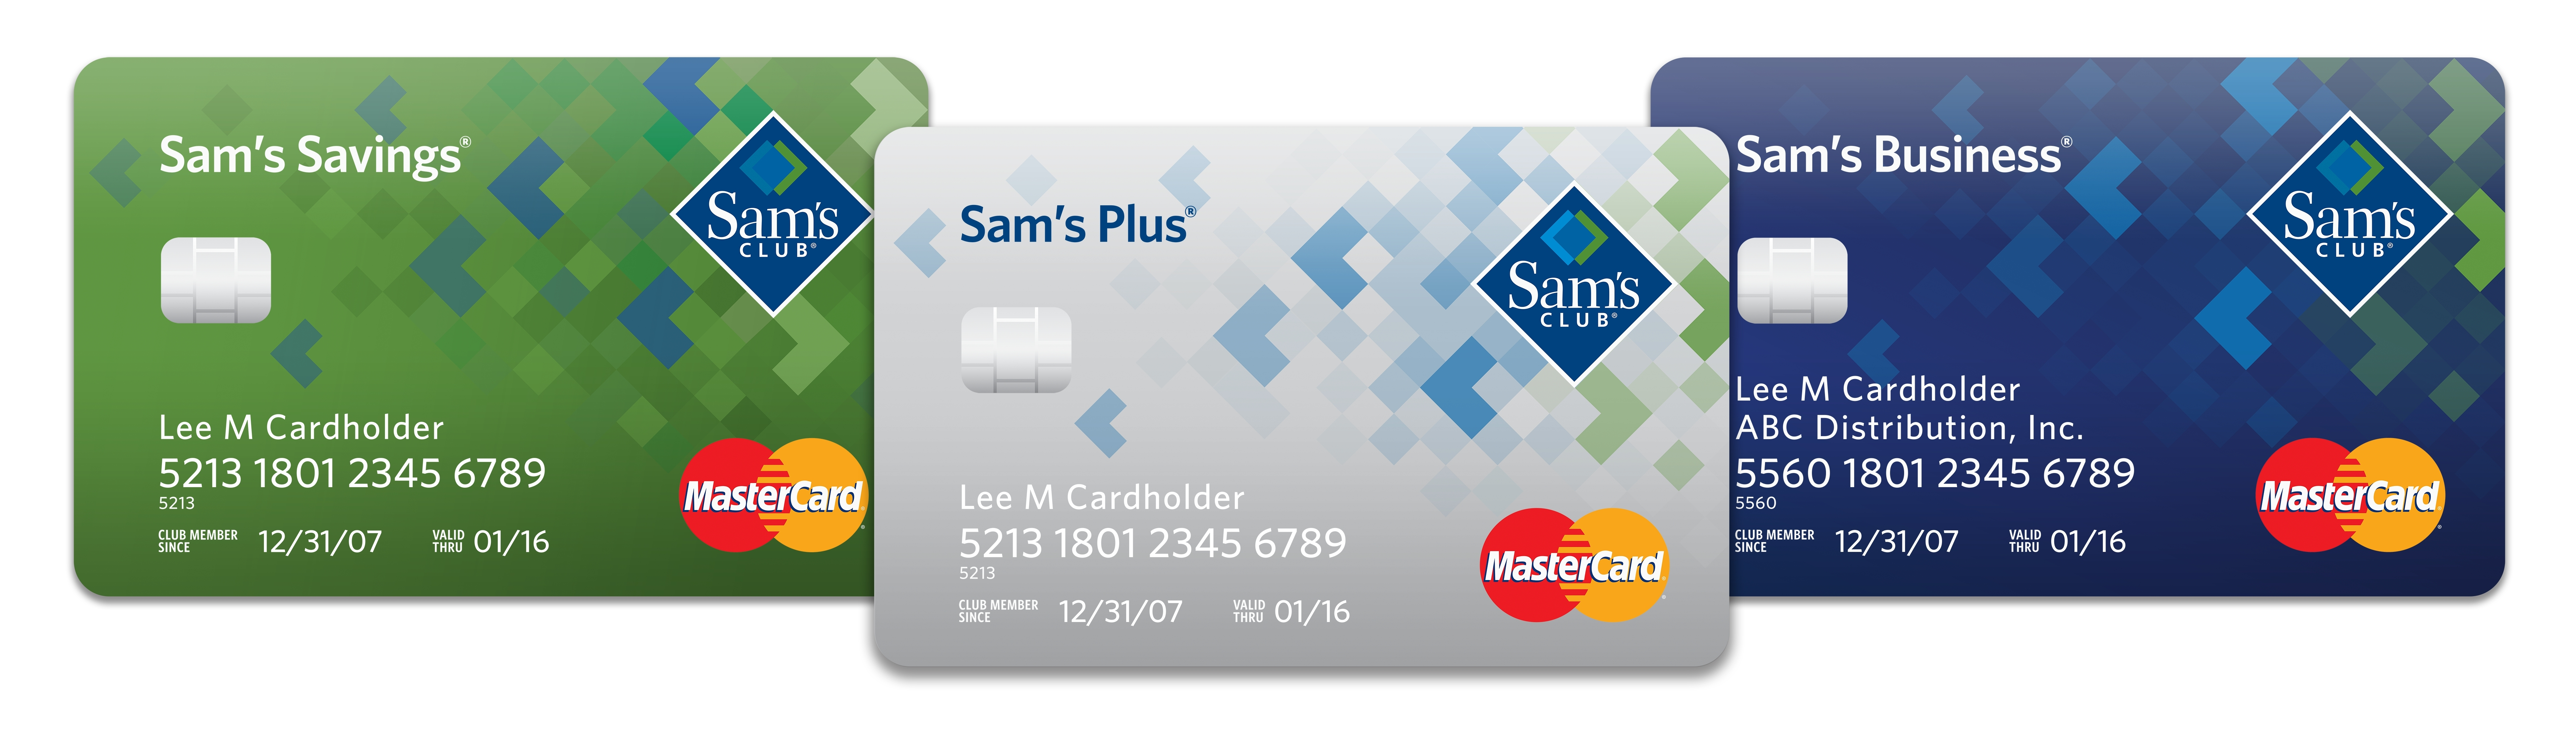 Synchrony Bank Credit Cards >> Sam's Club 5-3-1 Cash Back Credit Card Program with Synchrony Financial Earns PYMNTS.com 2015 ...